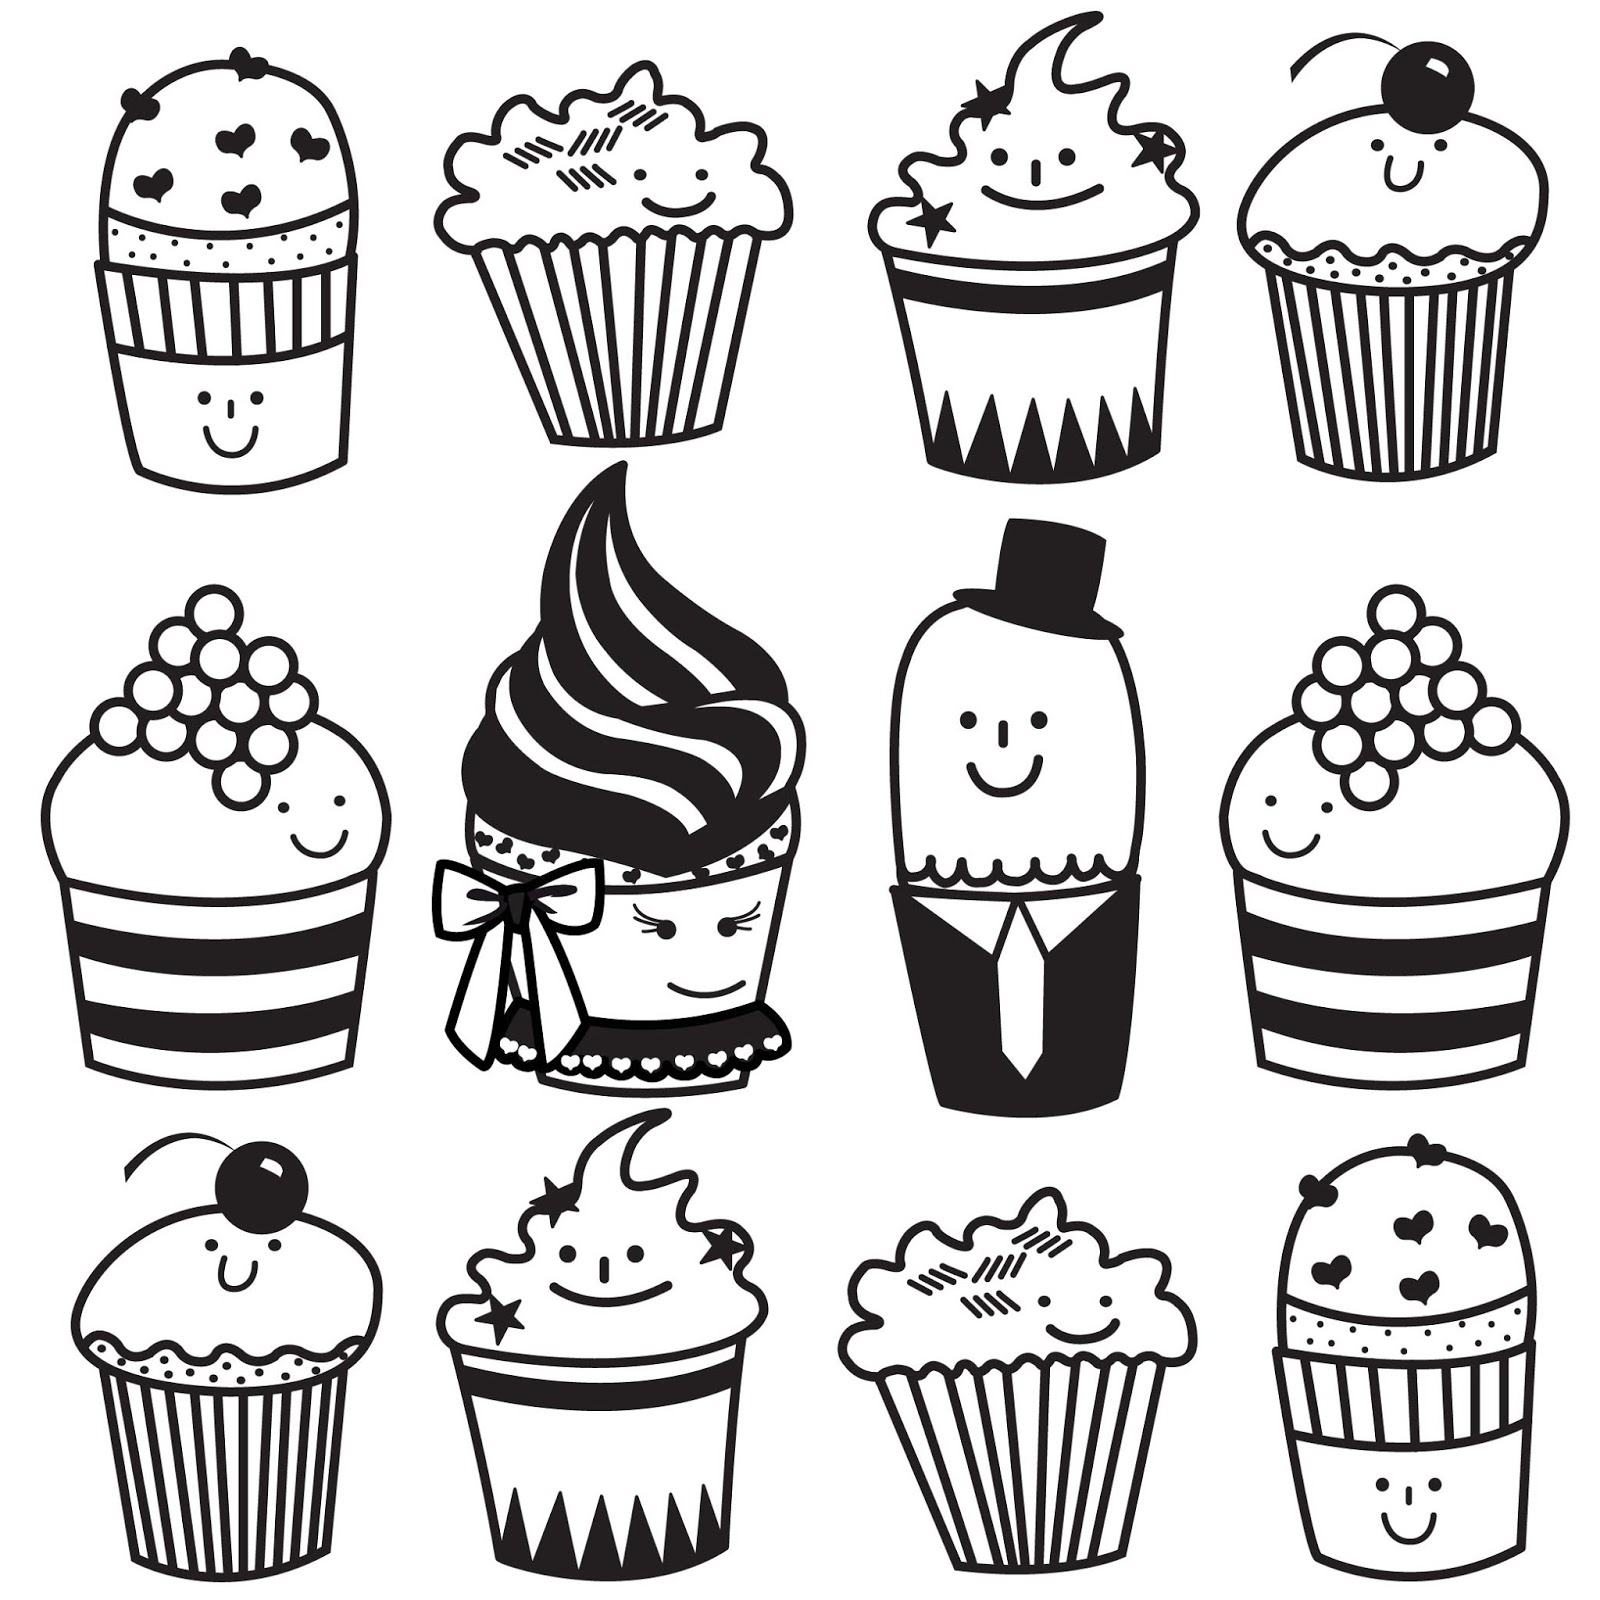 1600x1600 Black And White Cupcake Drawing Black And White Cupcake Drawing